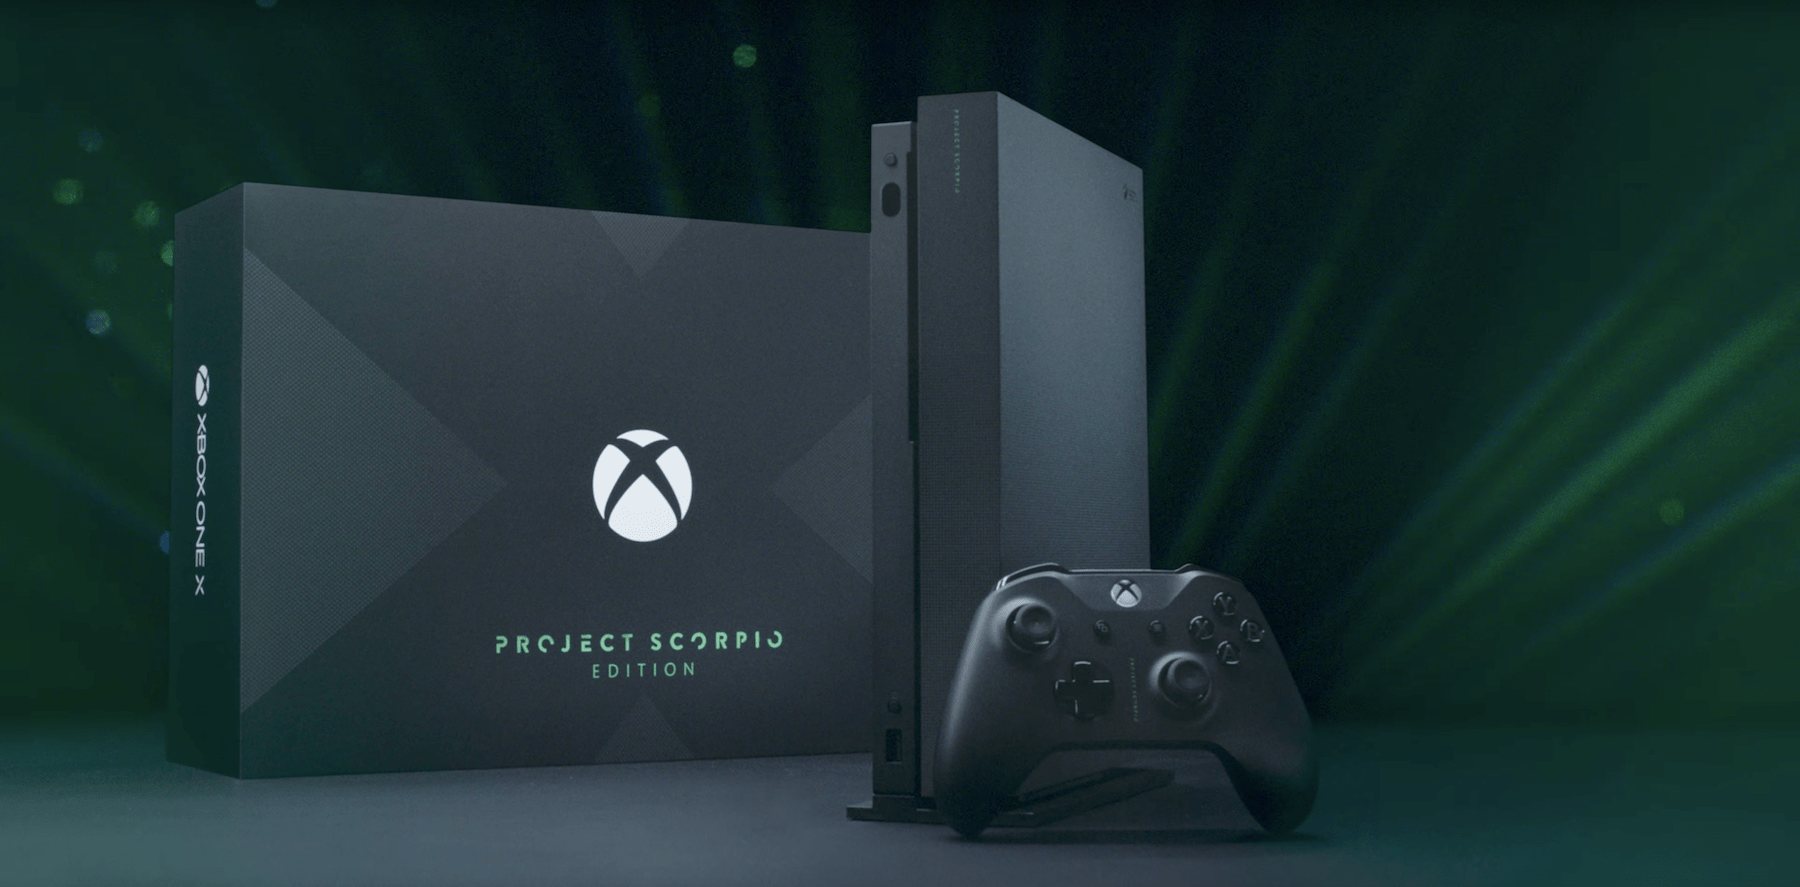 xbox one x project scorpio edition revealed and pre orders. Black Bedroom Furniture Sets. Home Design Ideas